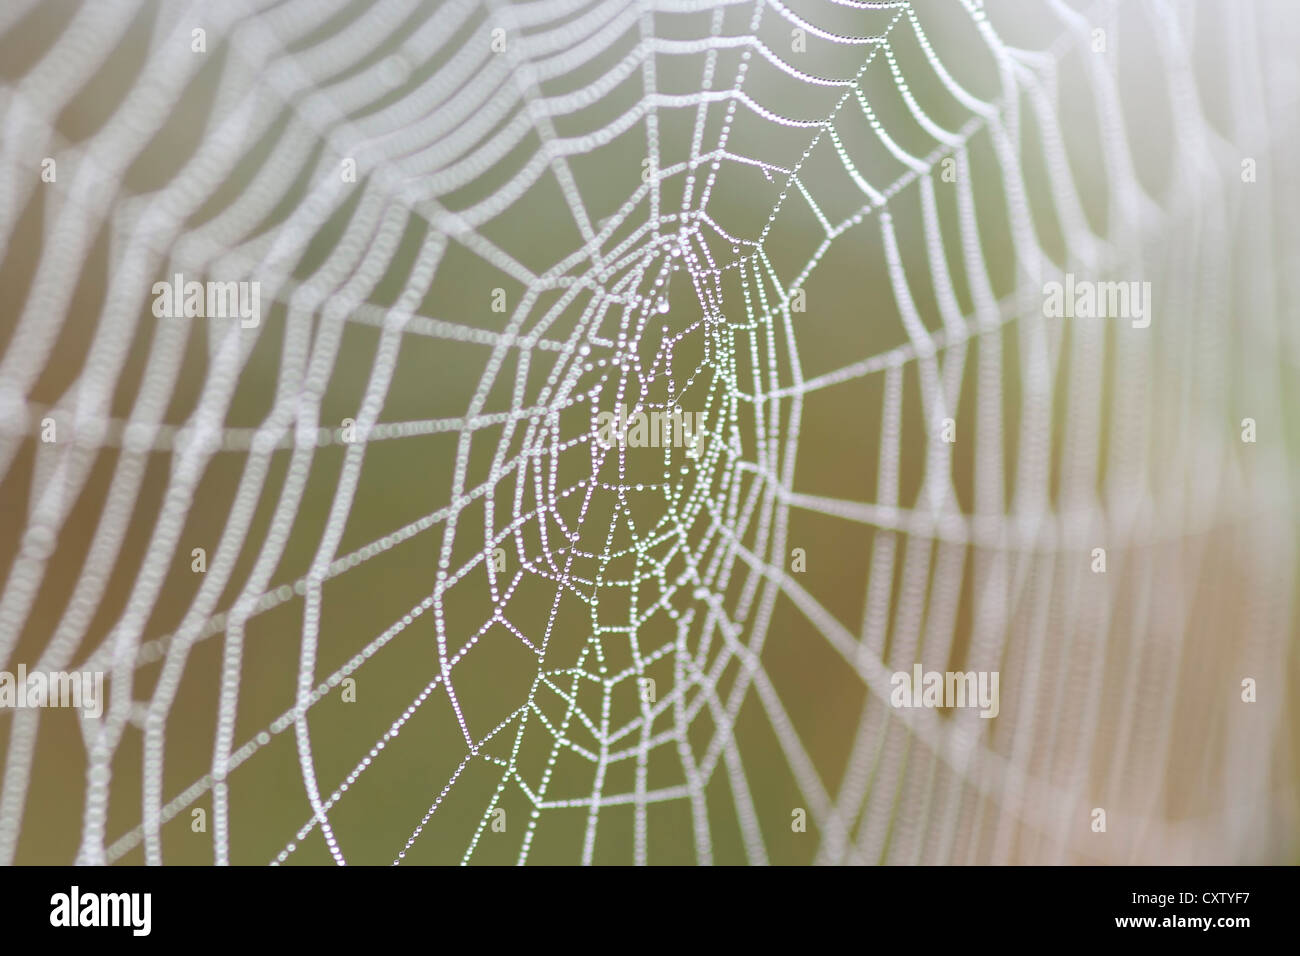 spider web wet with dew - Stock Image